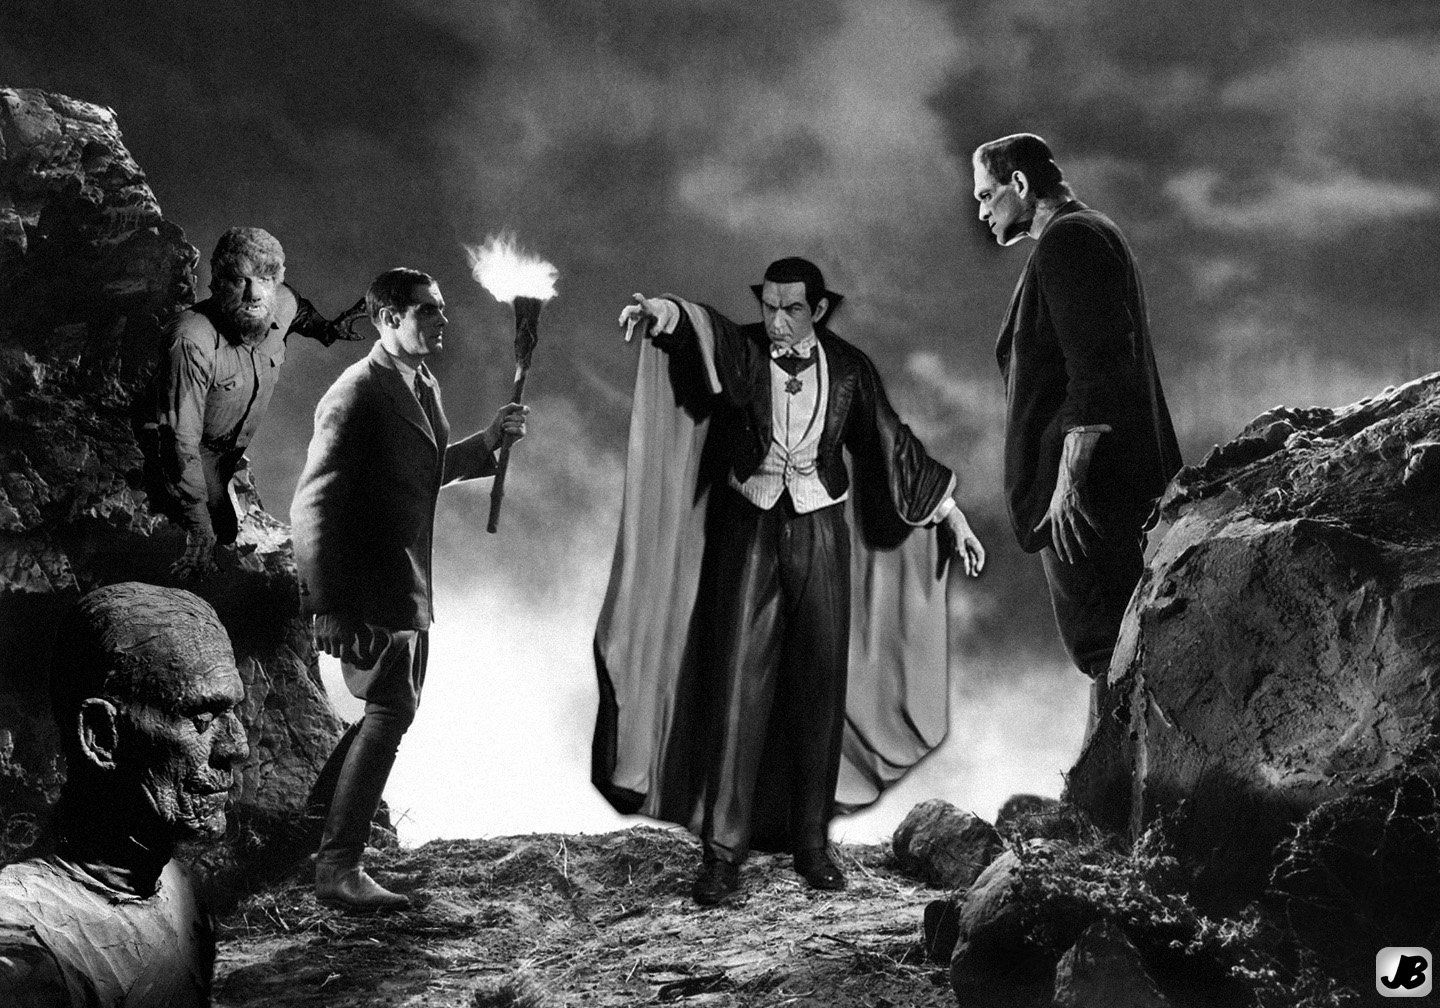 Niversal Monsters Wallpaper Hd Images Of Universal Universal Monsters Hollywood Monsters Classic Horror Movies